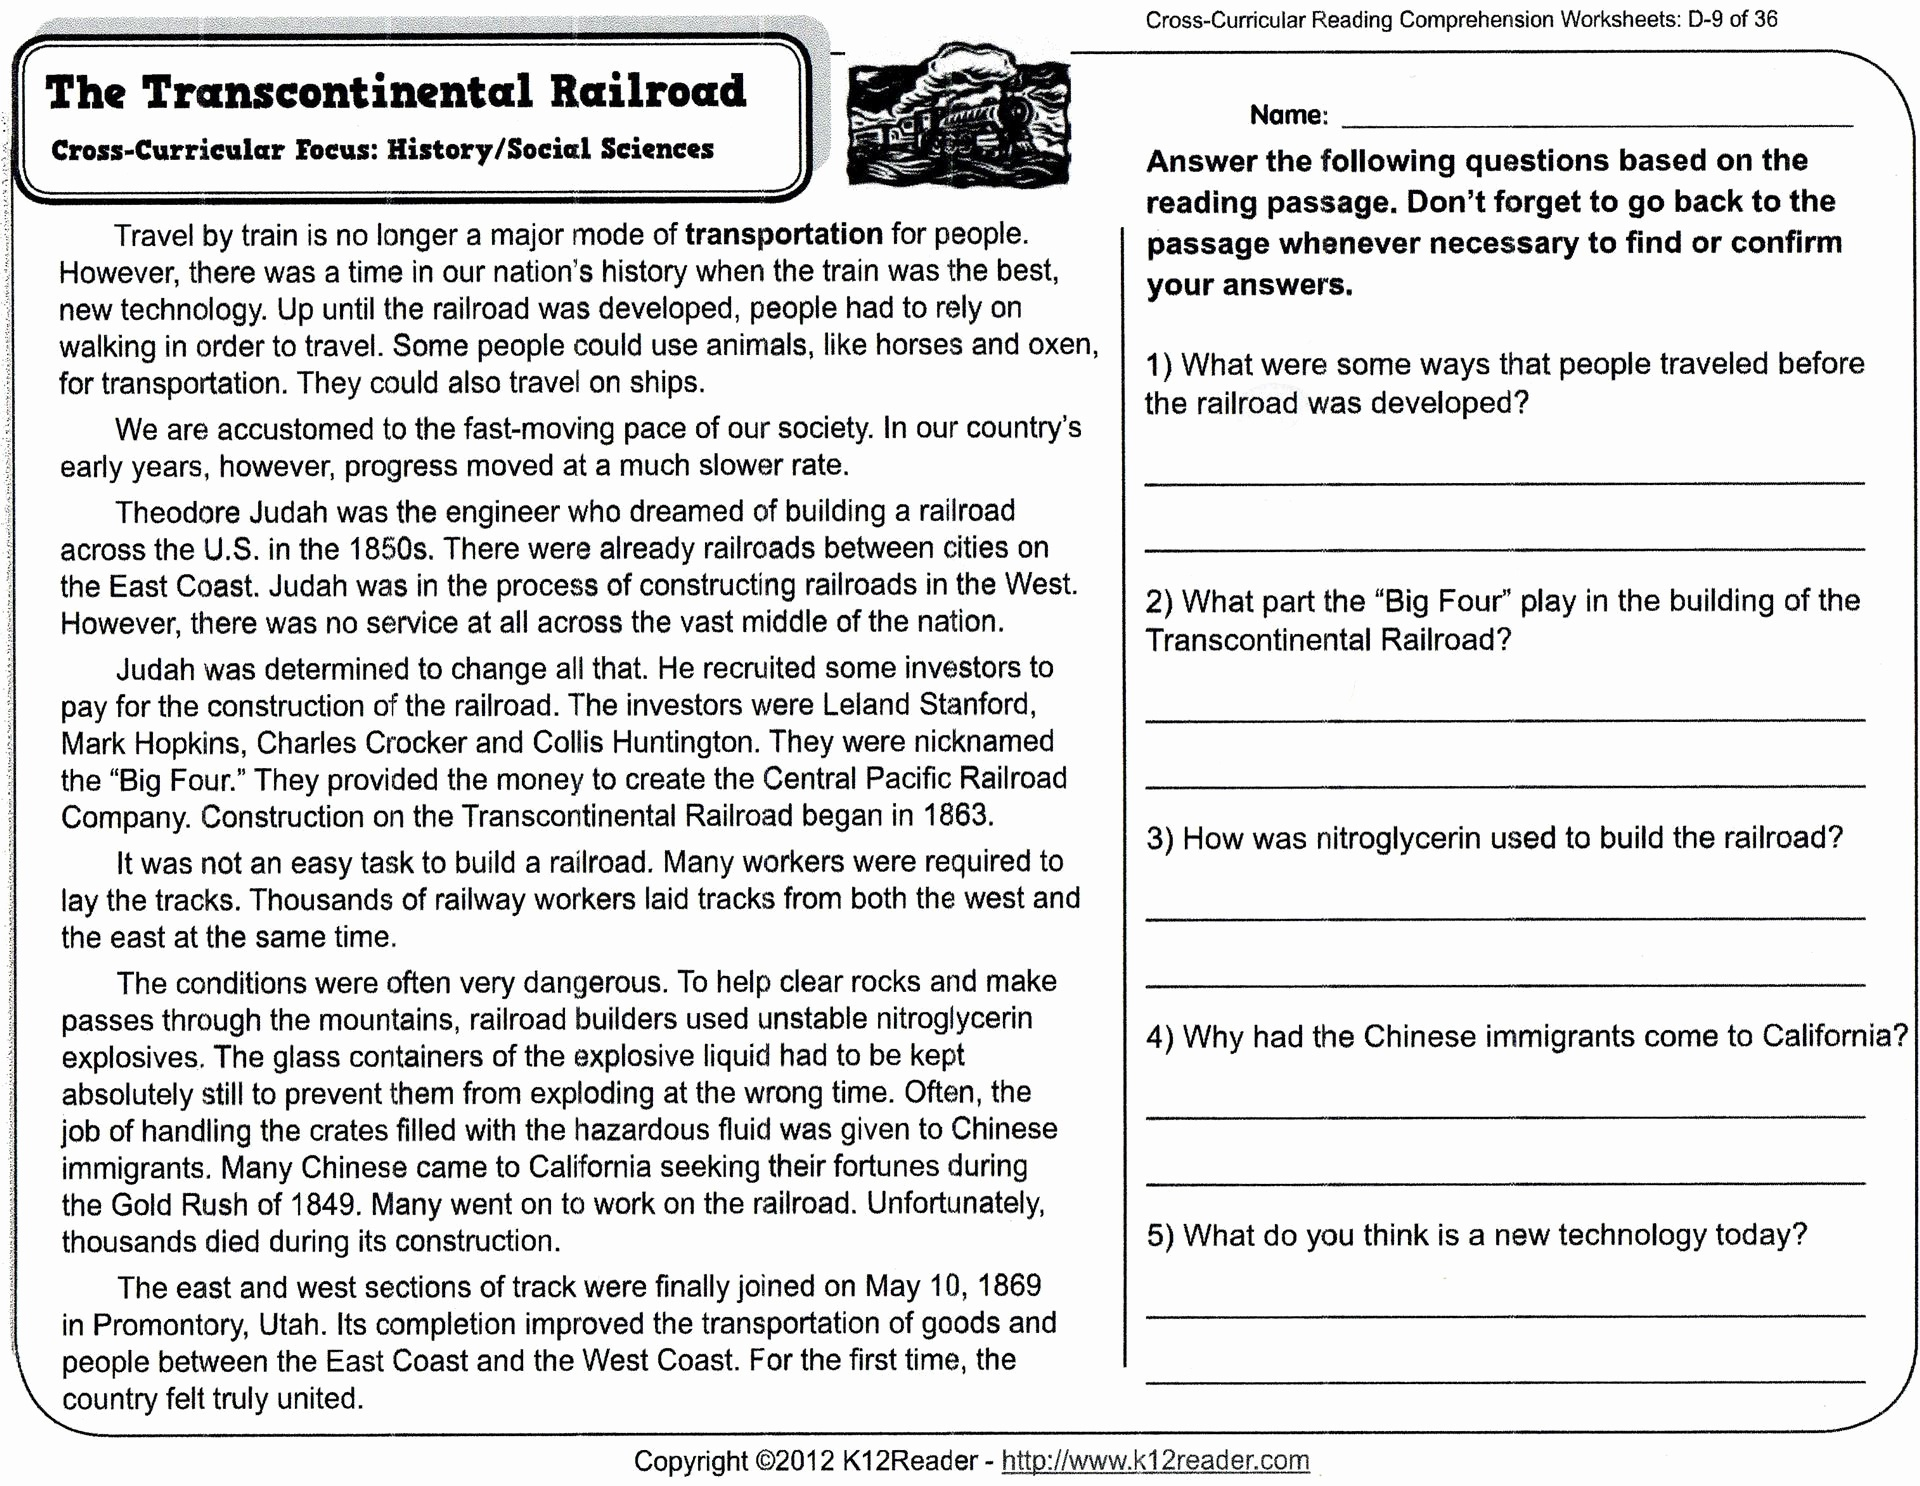 Reading Comprehension Worksheets For 8Th Grade Free Report Templates - Free Printable Worksheets Reading Comprehension 5Th Grade